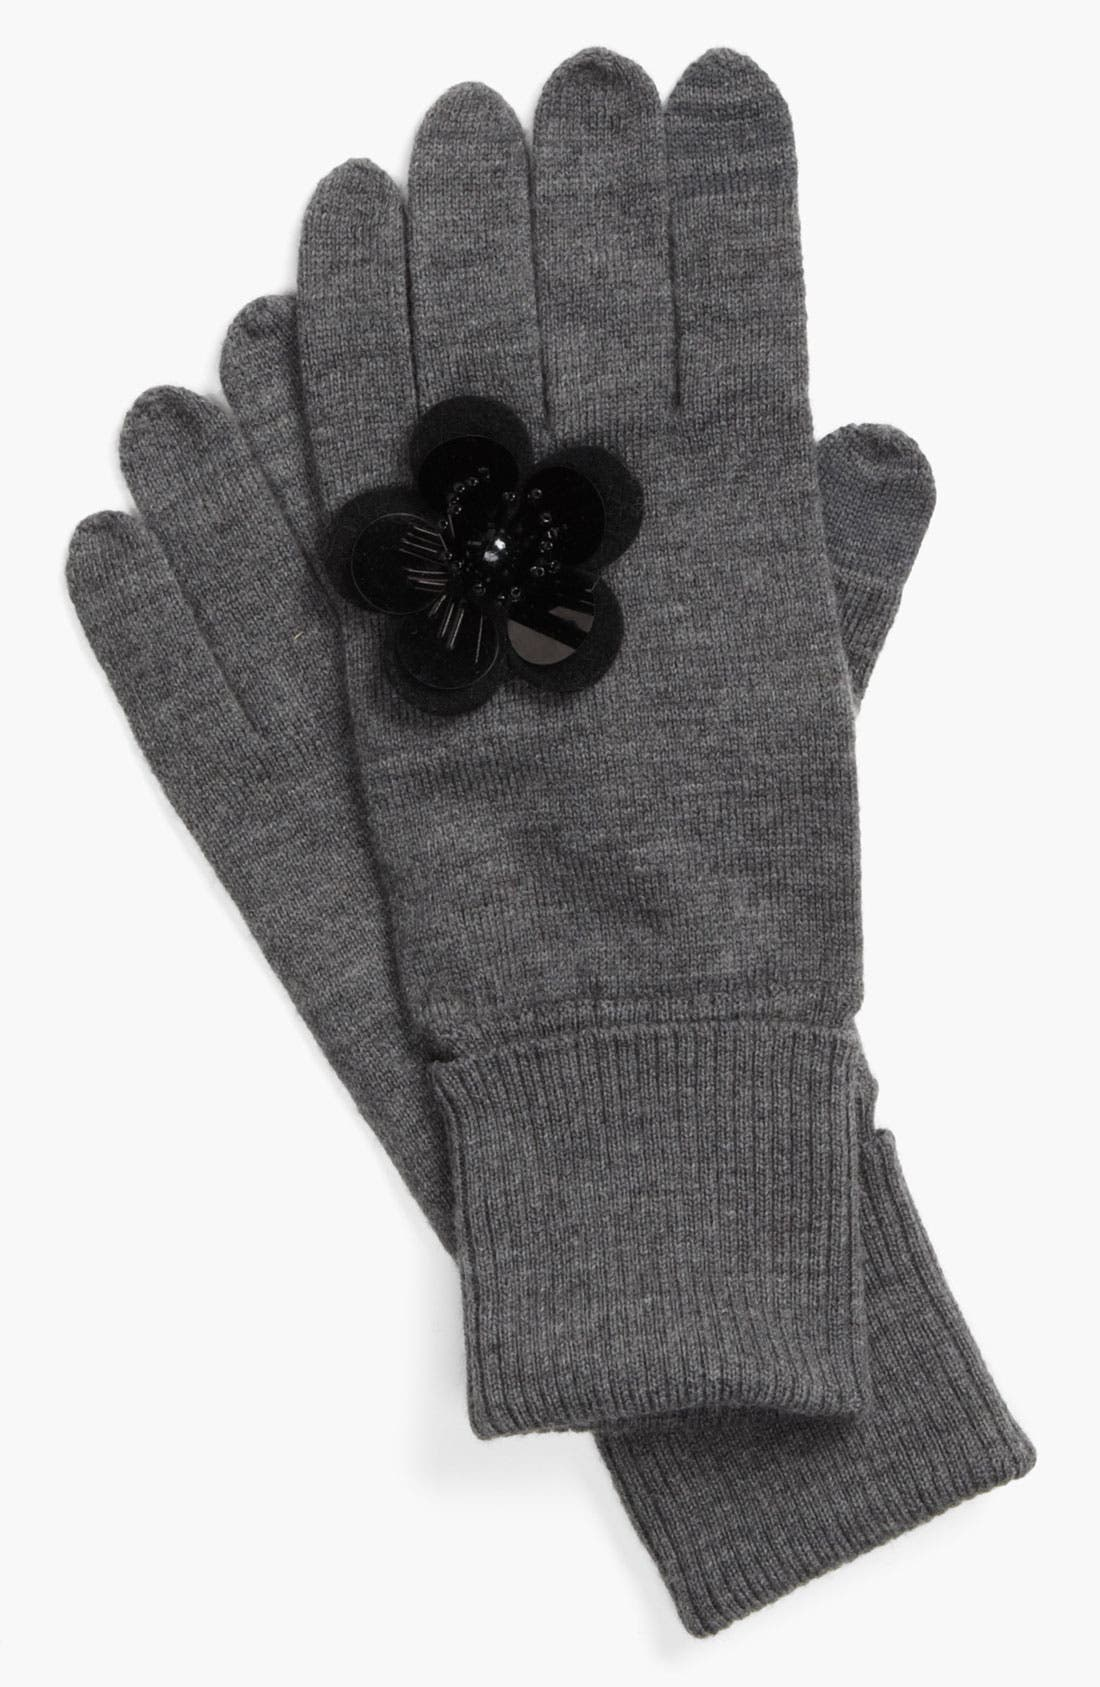 Main Image - kate spade new york 'magnolia' knit tech glove